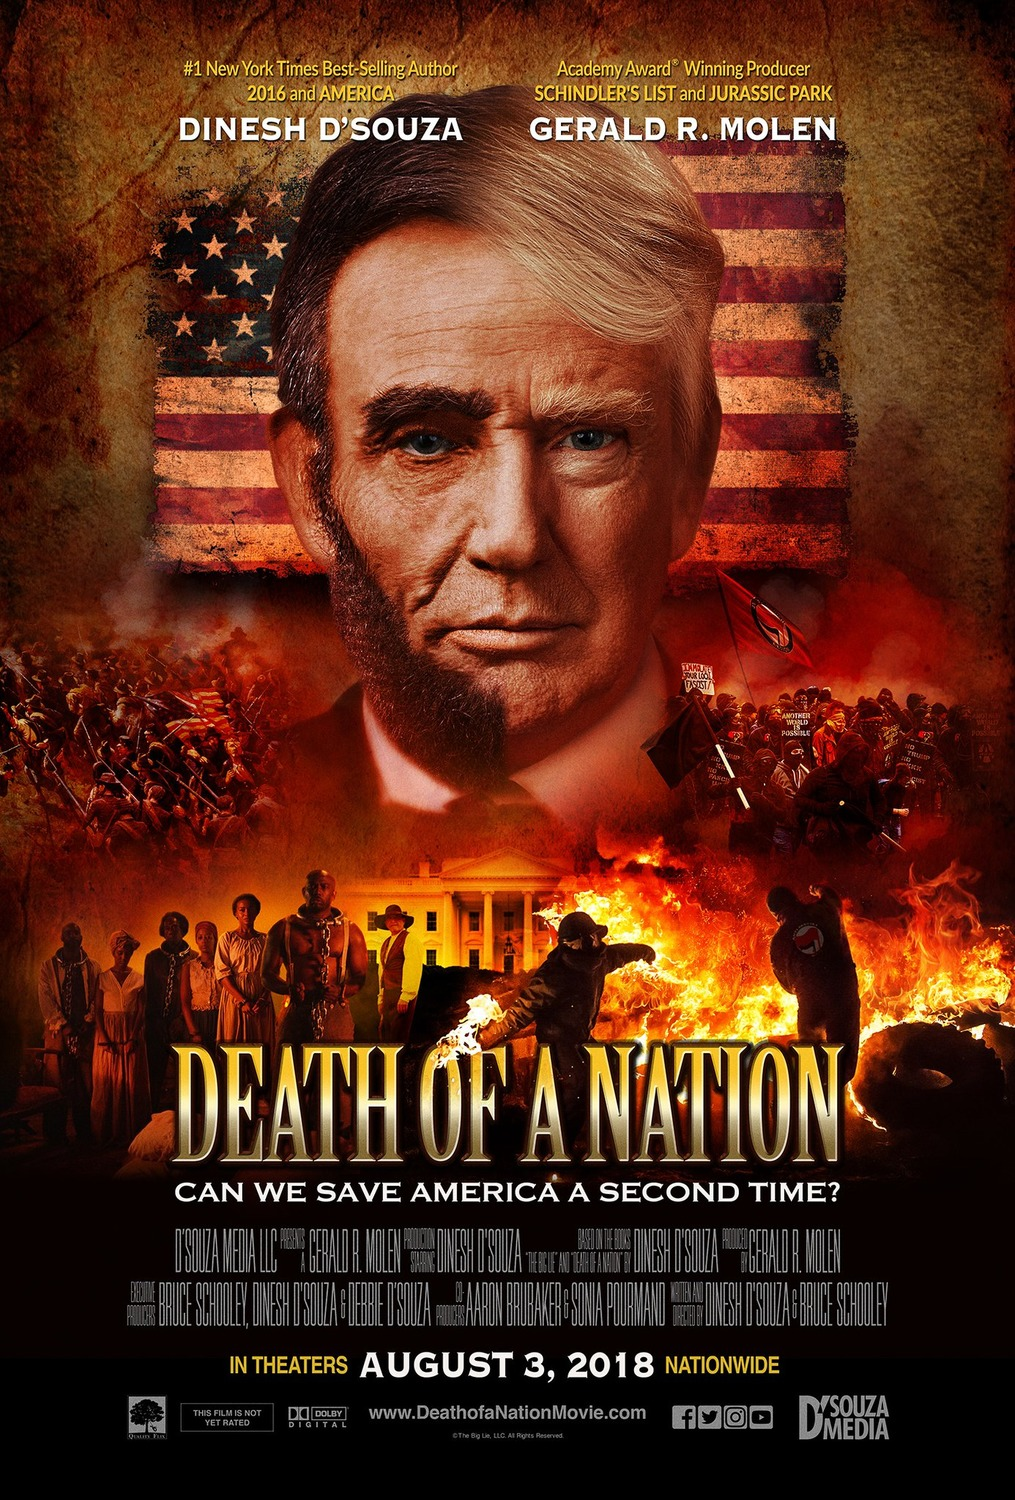 Extra Large Movie Poster Image for Death of a Nation